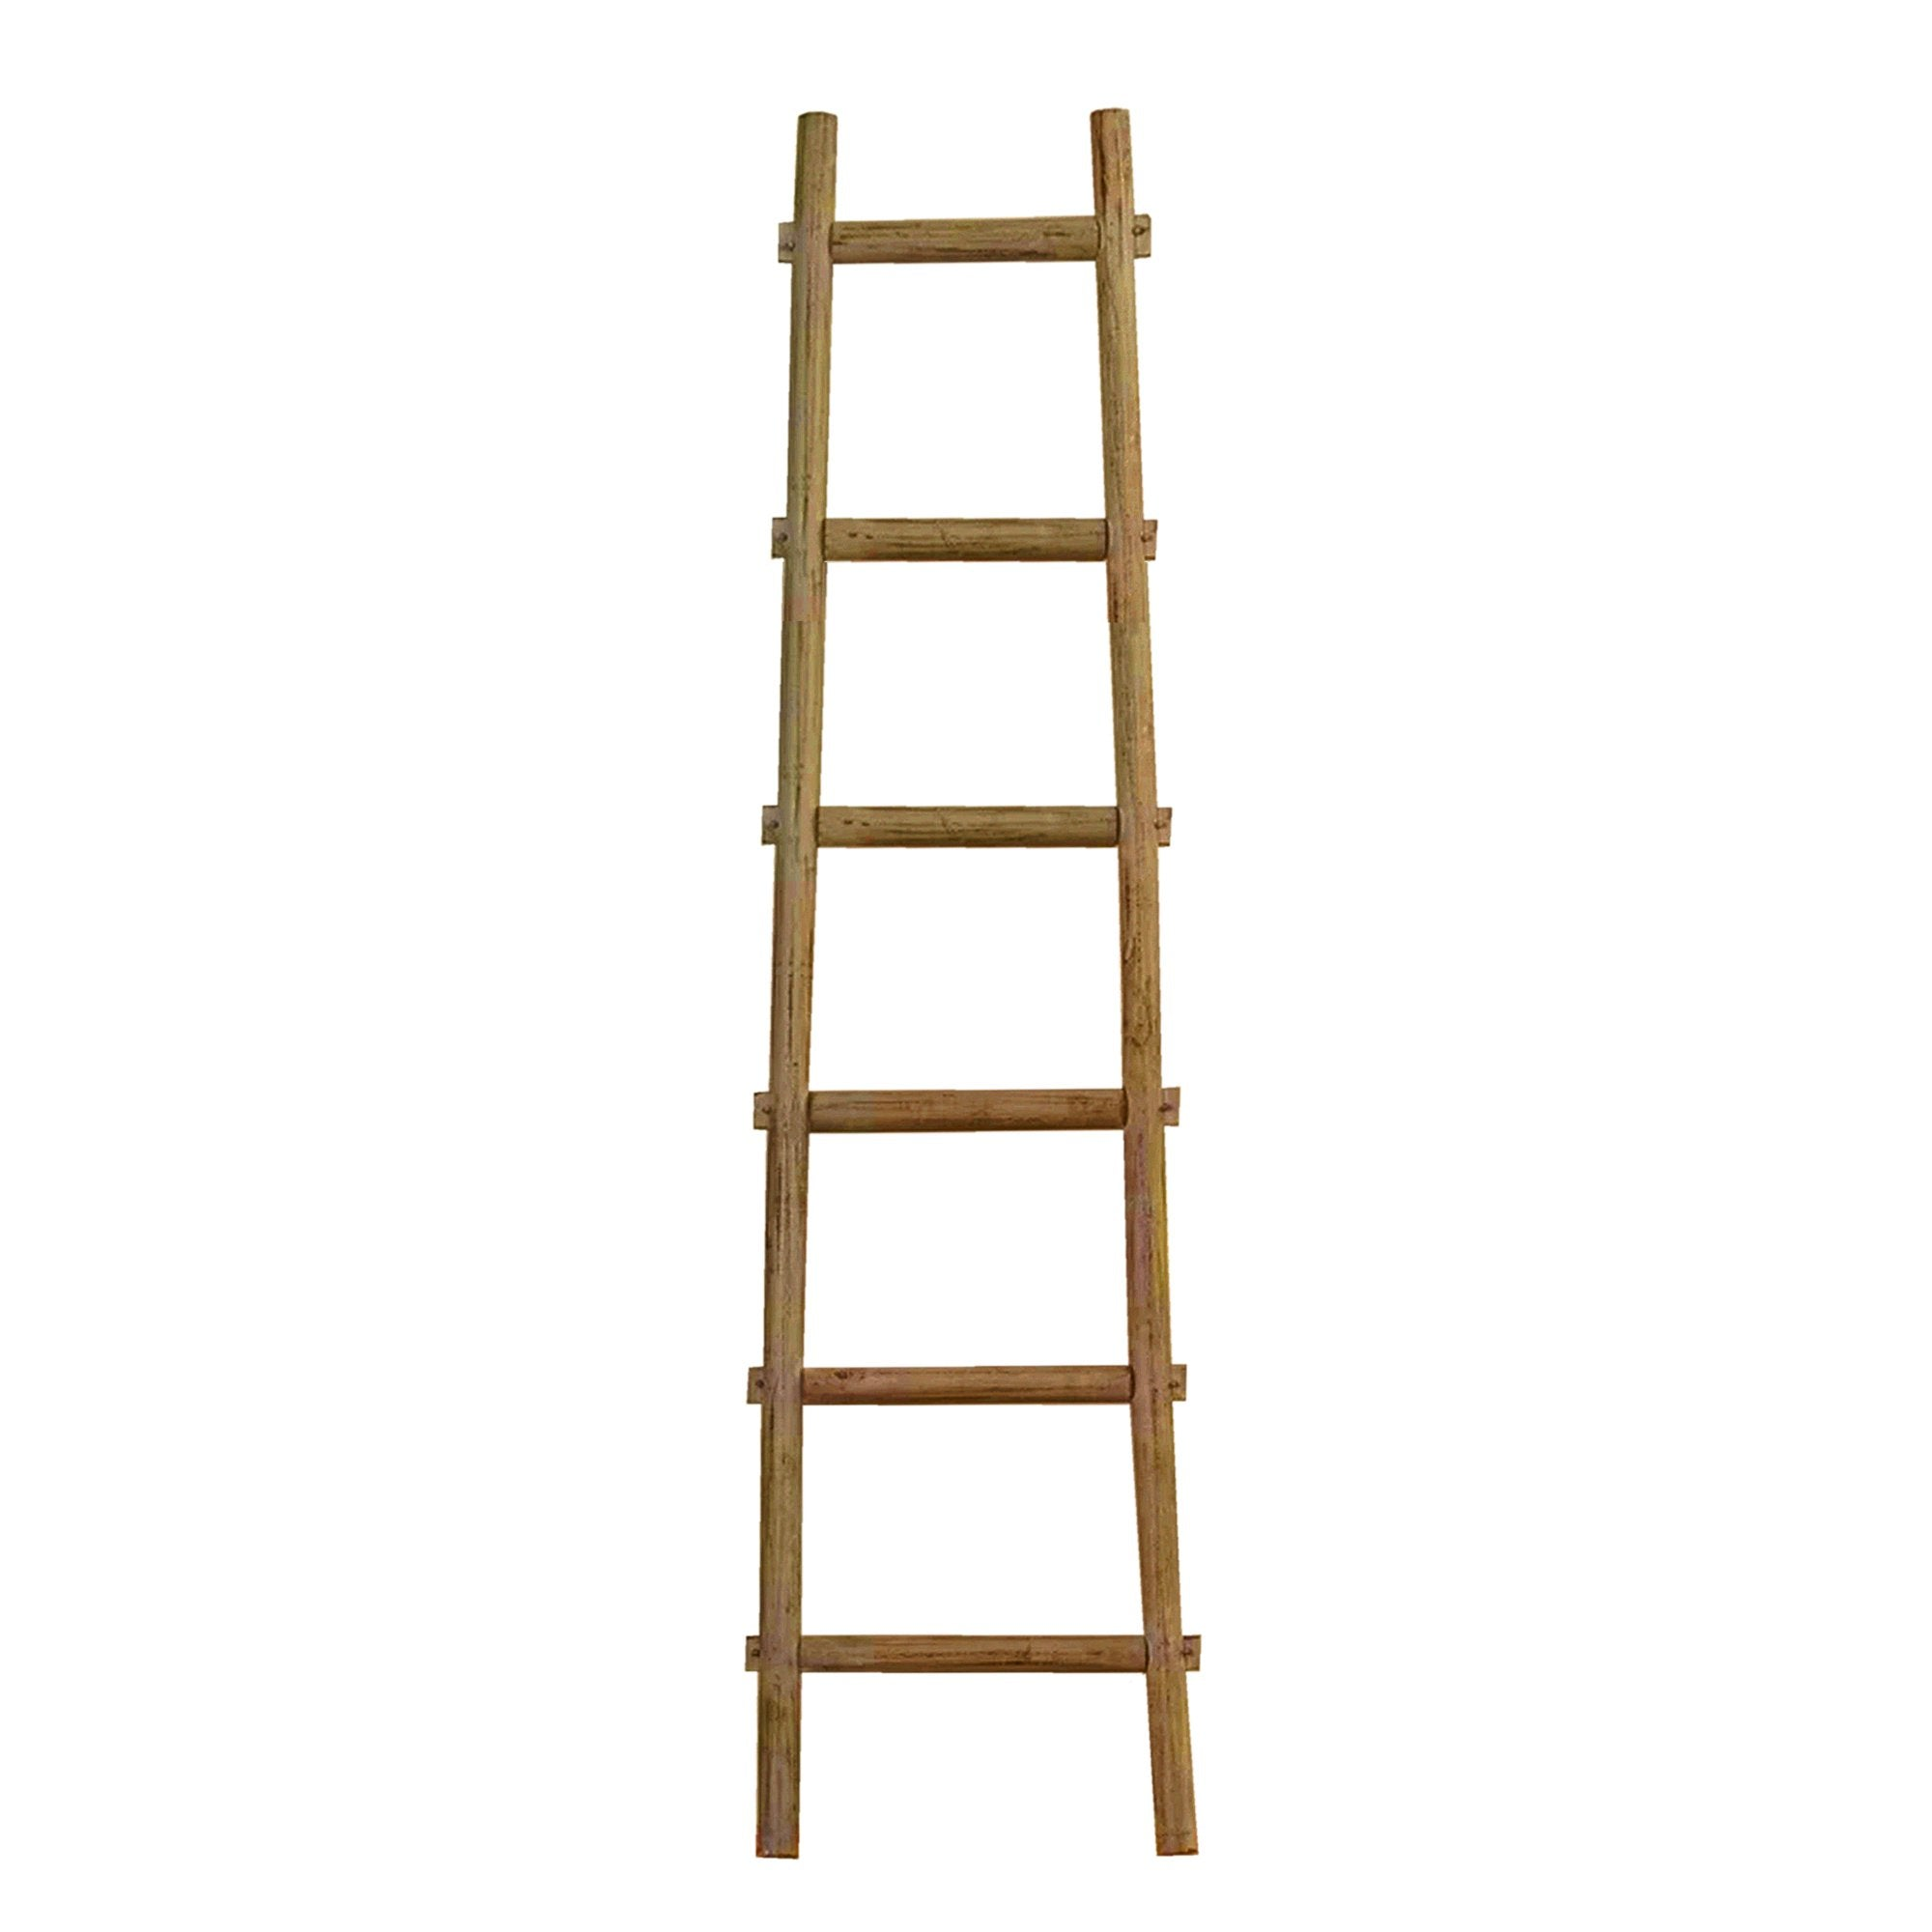 6 Step Brown Decorative Ladder Shelve